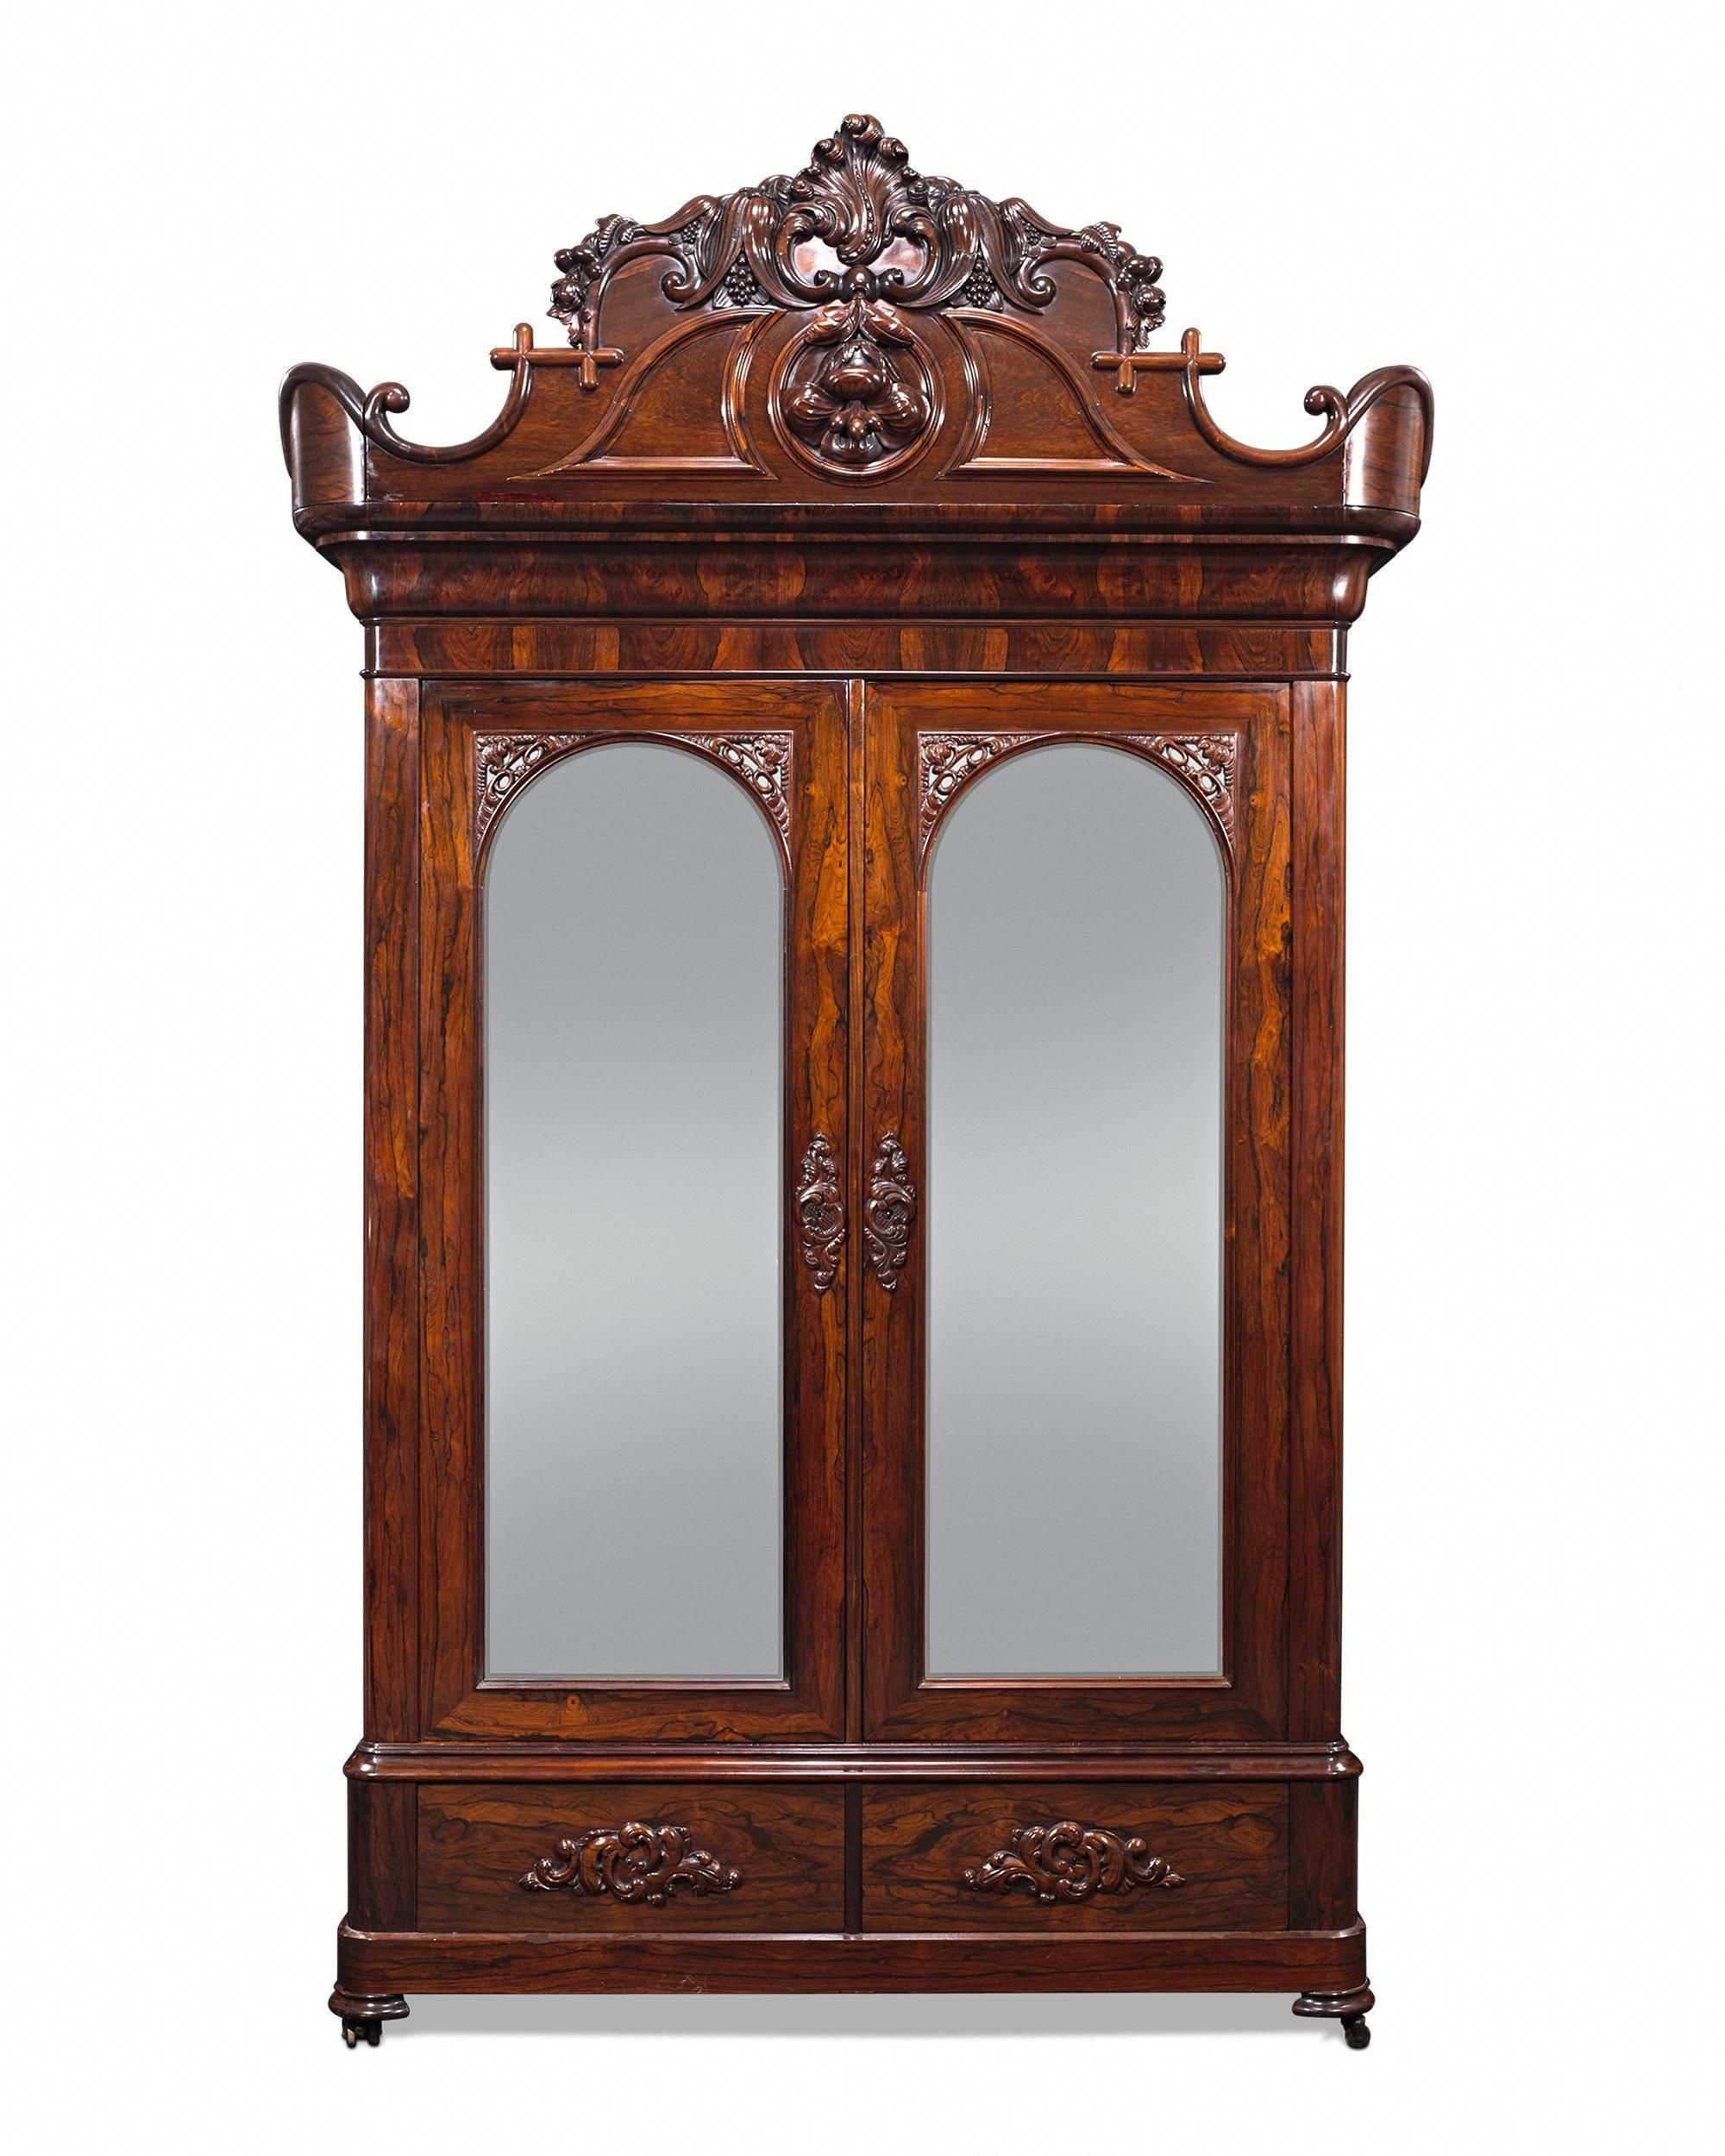 new styles ea187 9ccfe Furniture Auctions | Old Furniture Antique | Value My ...